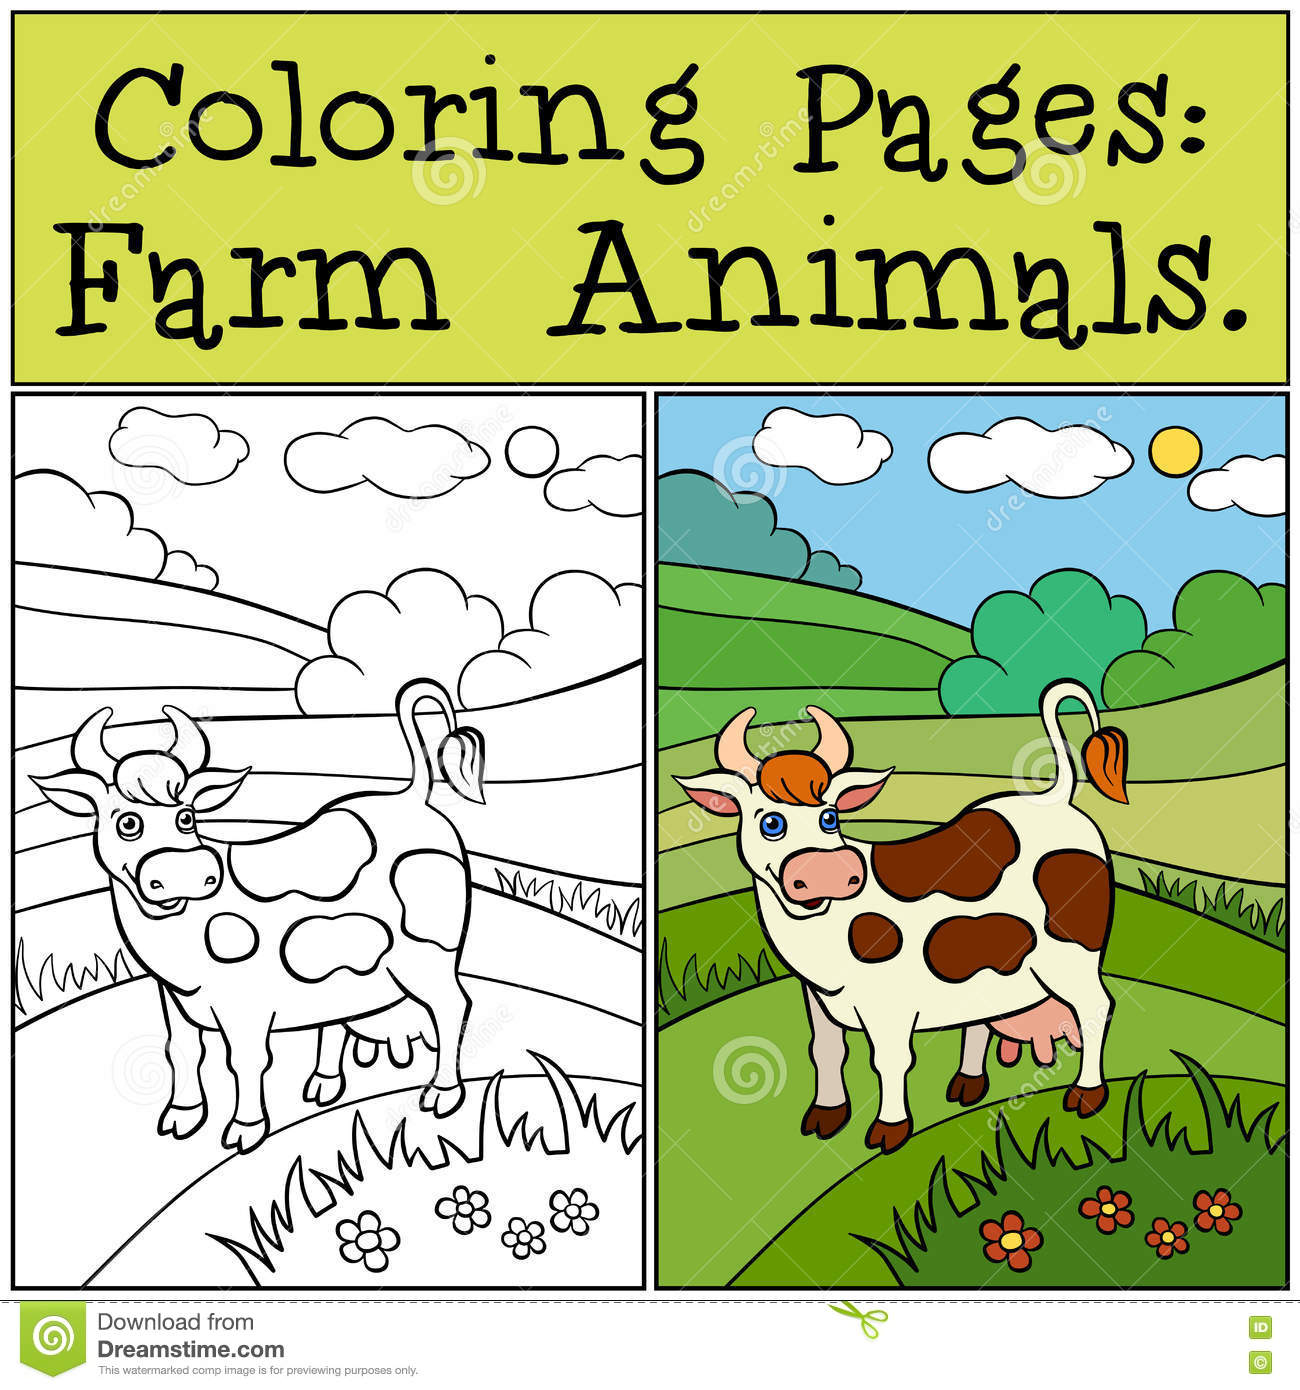 Coloring Pages Farm Animals Cute Cow Stock Vector